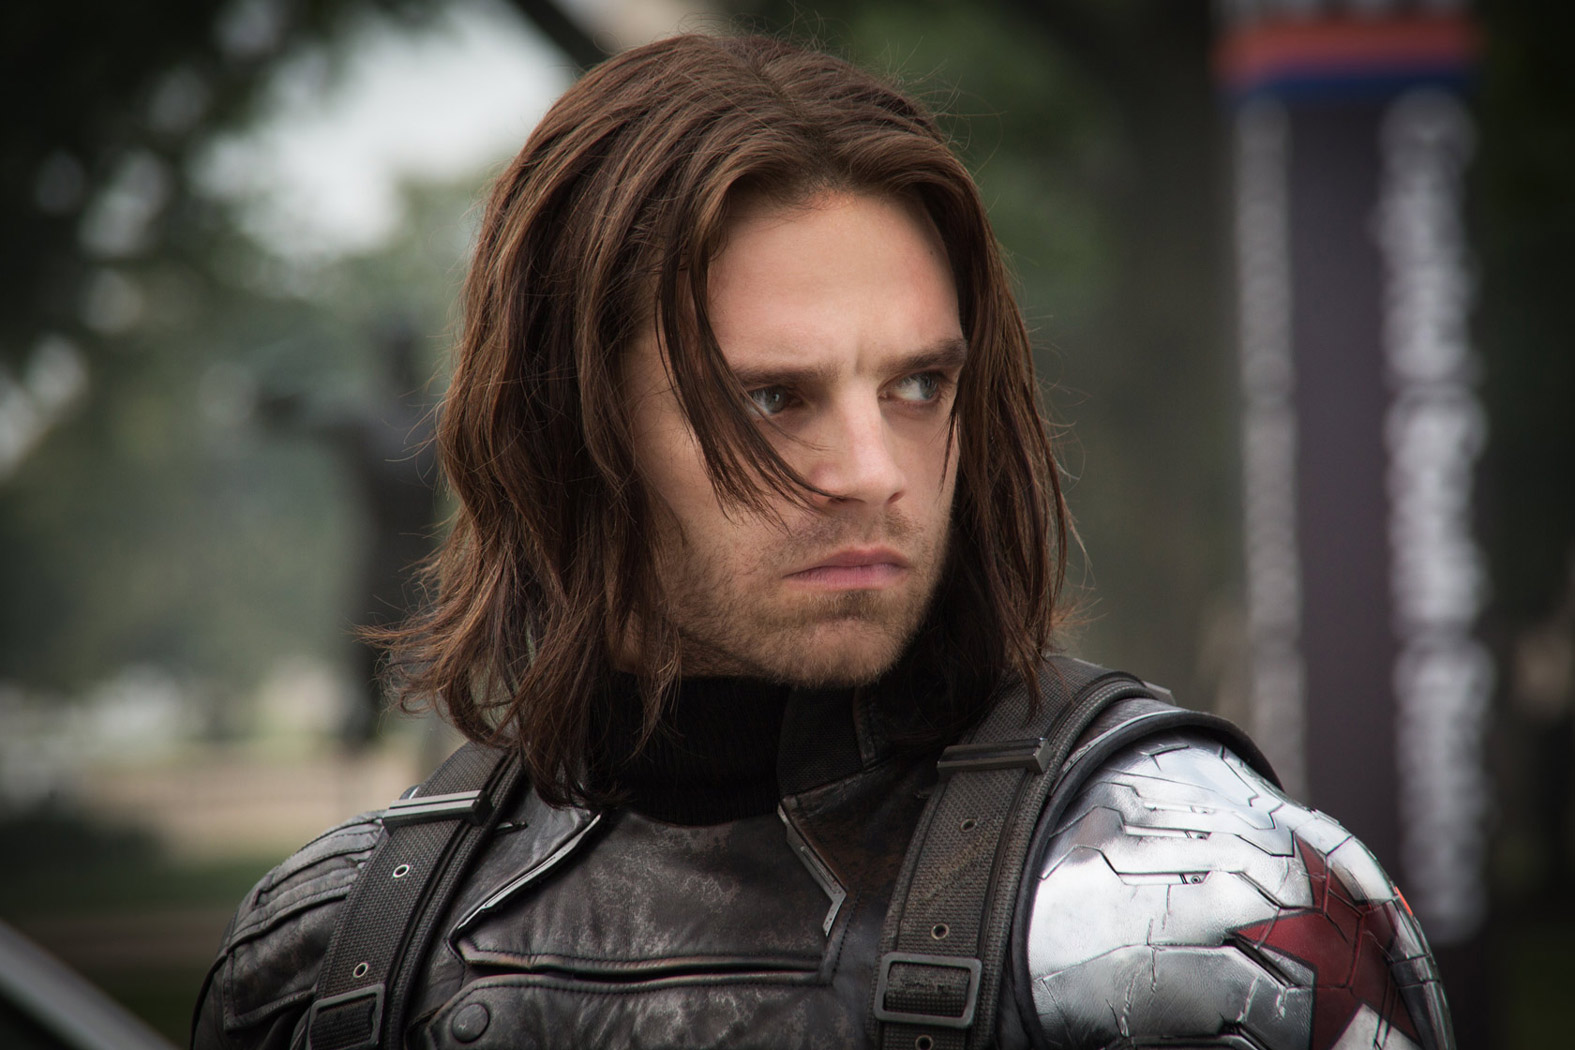 Captain-America-2-Official-Photo-Winter-Soldier-Sebastian-Stan-close-up